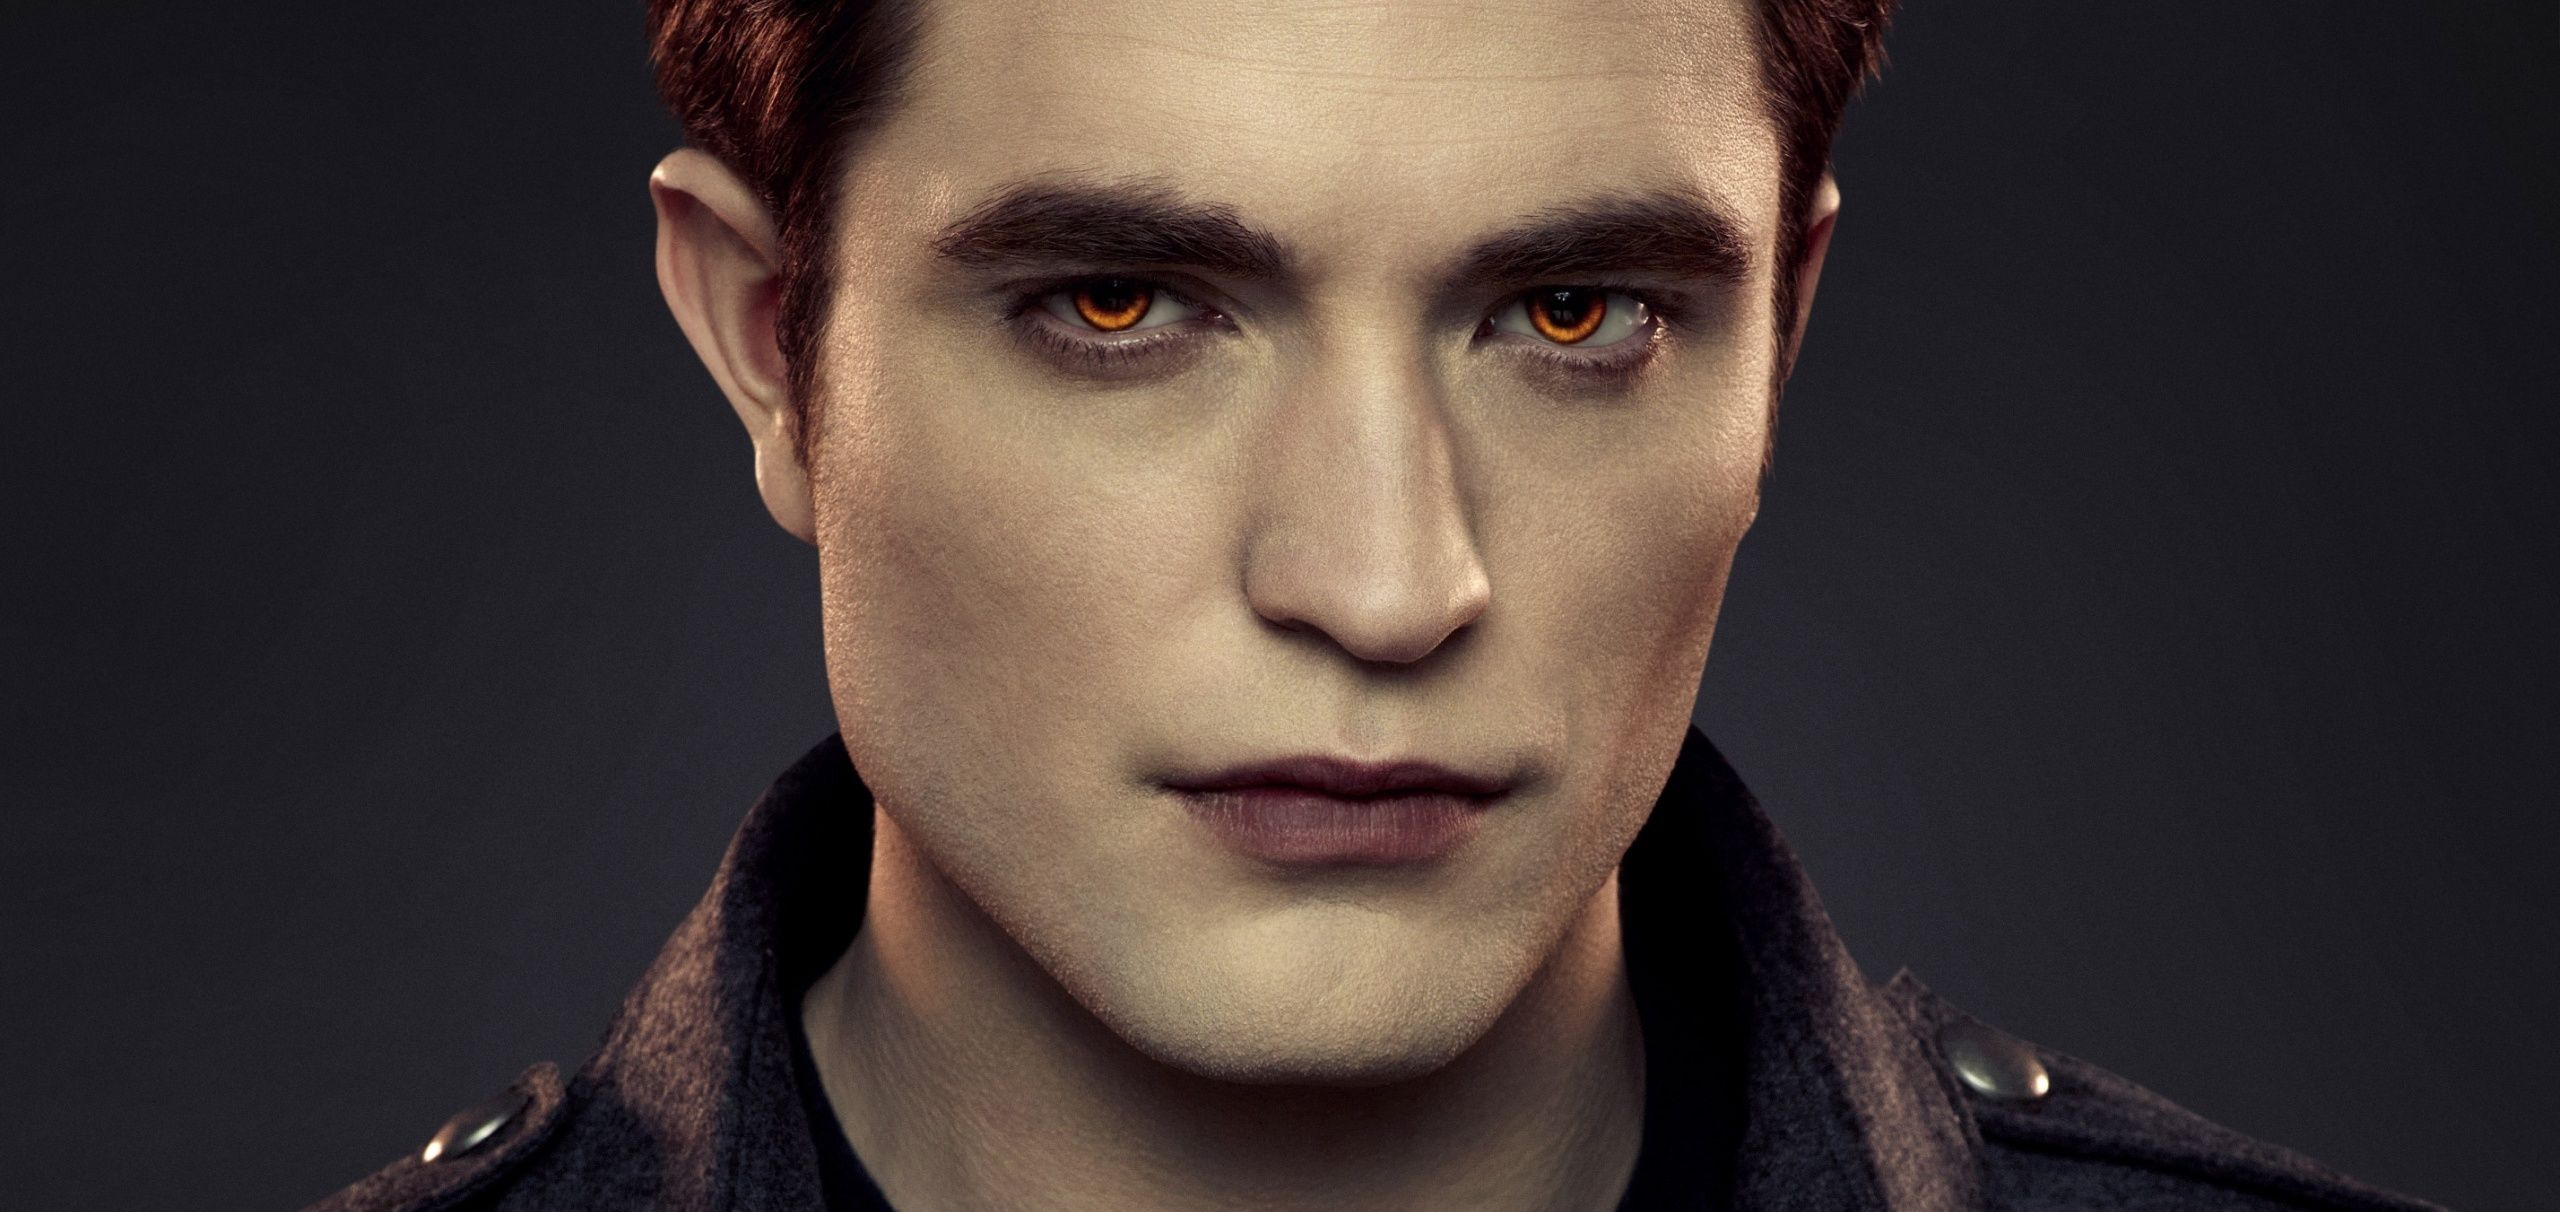 how old is edward in twilight